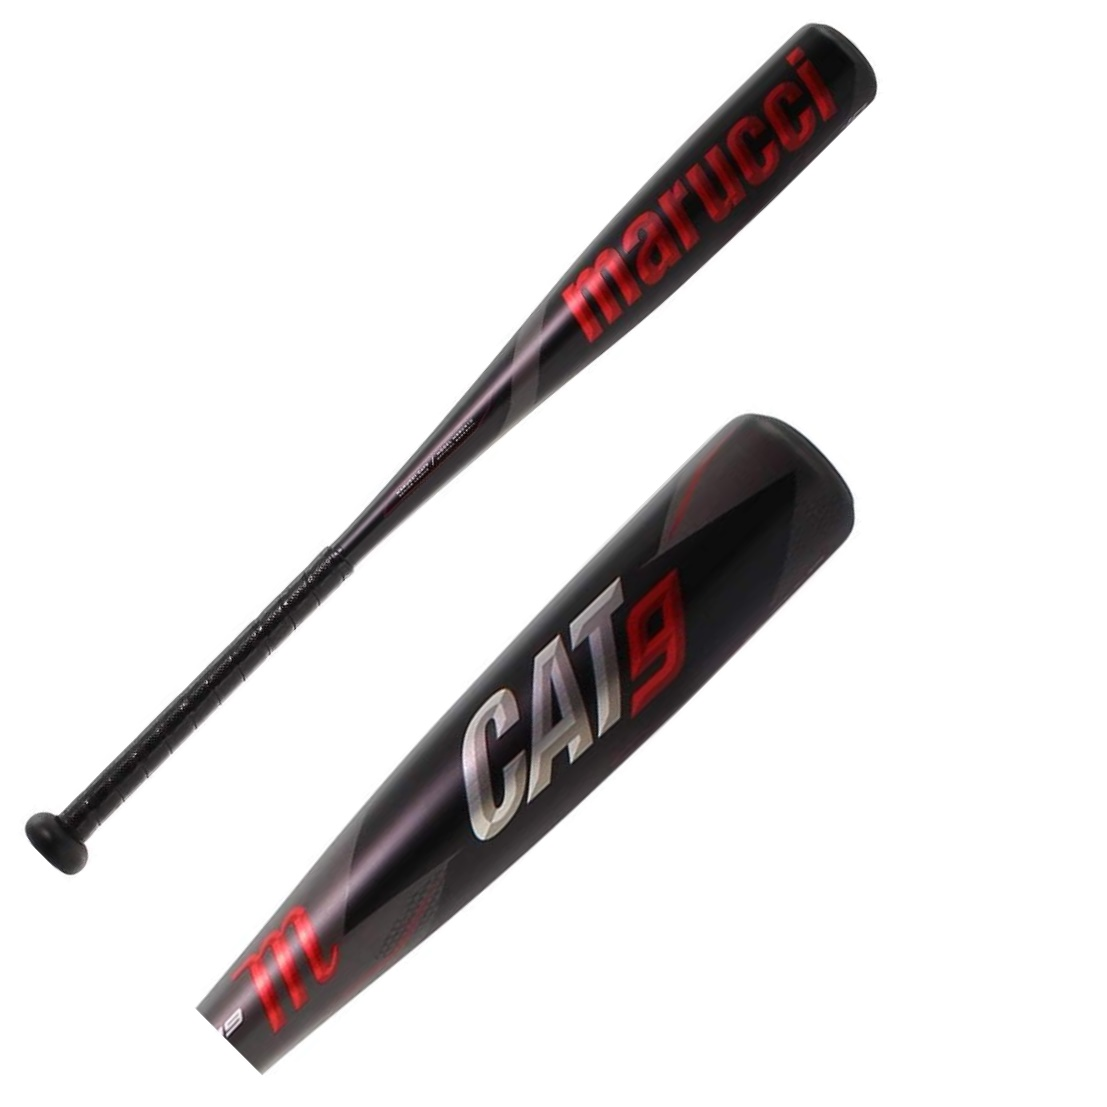 marucci-cat-9-10-usssa-baseball-bat-31-inch-21-oz MSBC910-3121   Utilizing a three-stage thermal treatment process our new AZR alloy offers